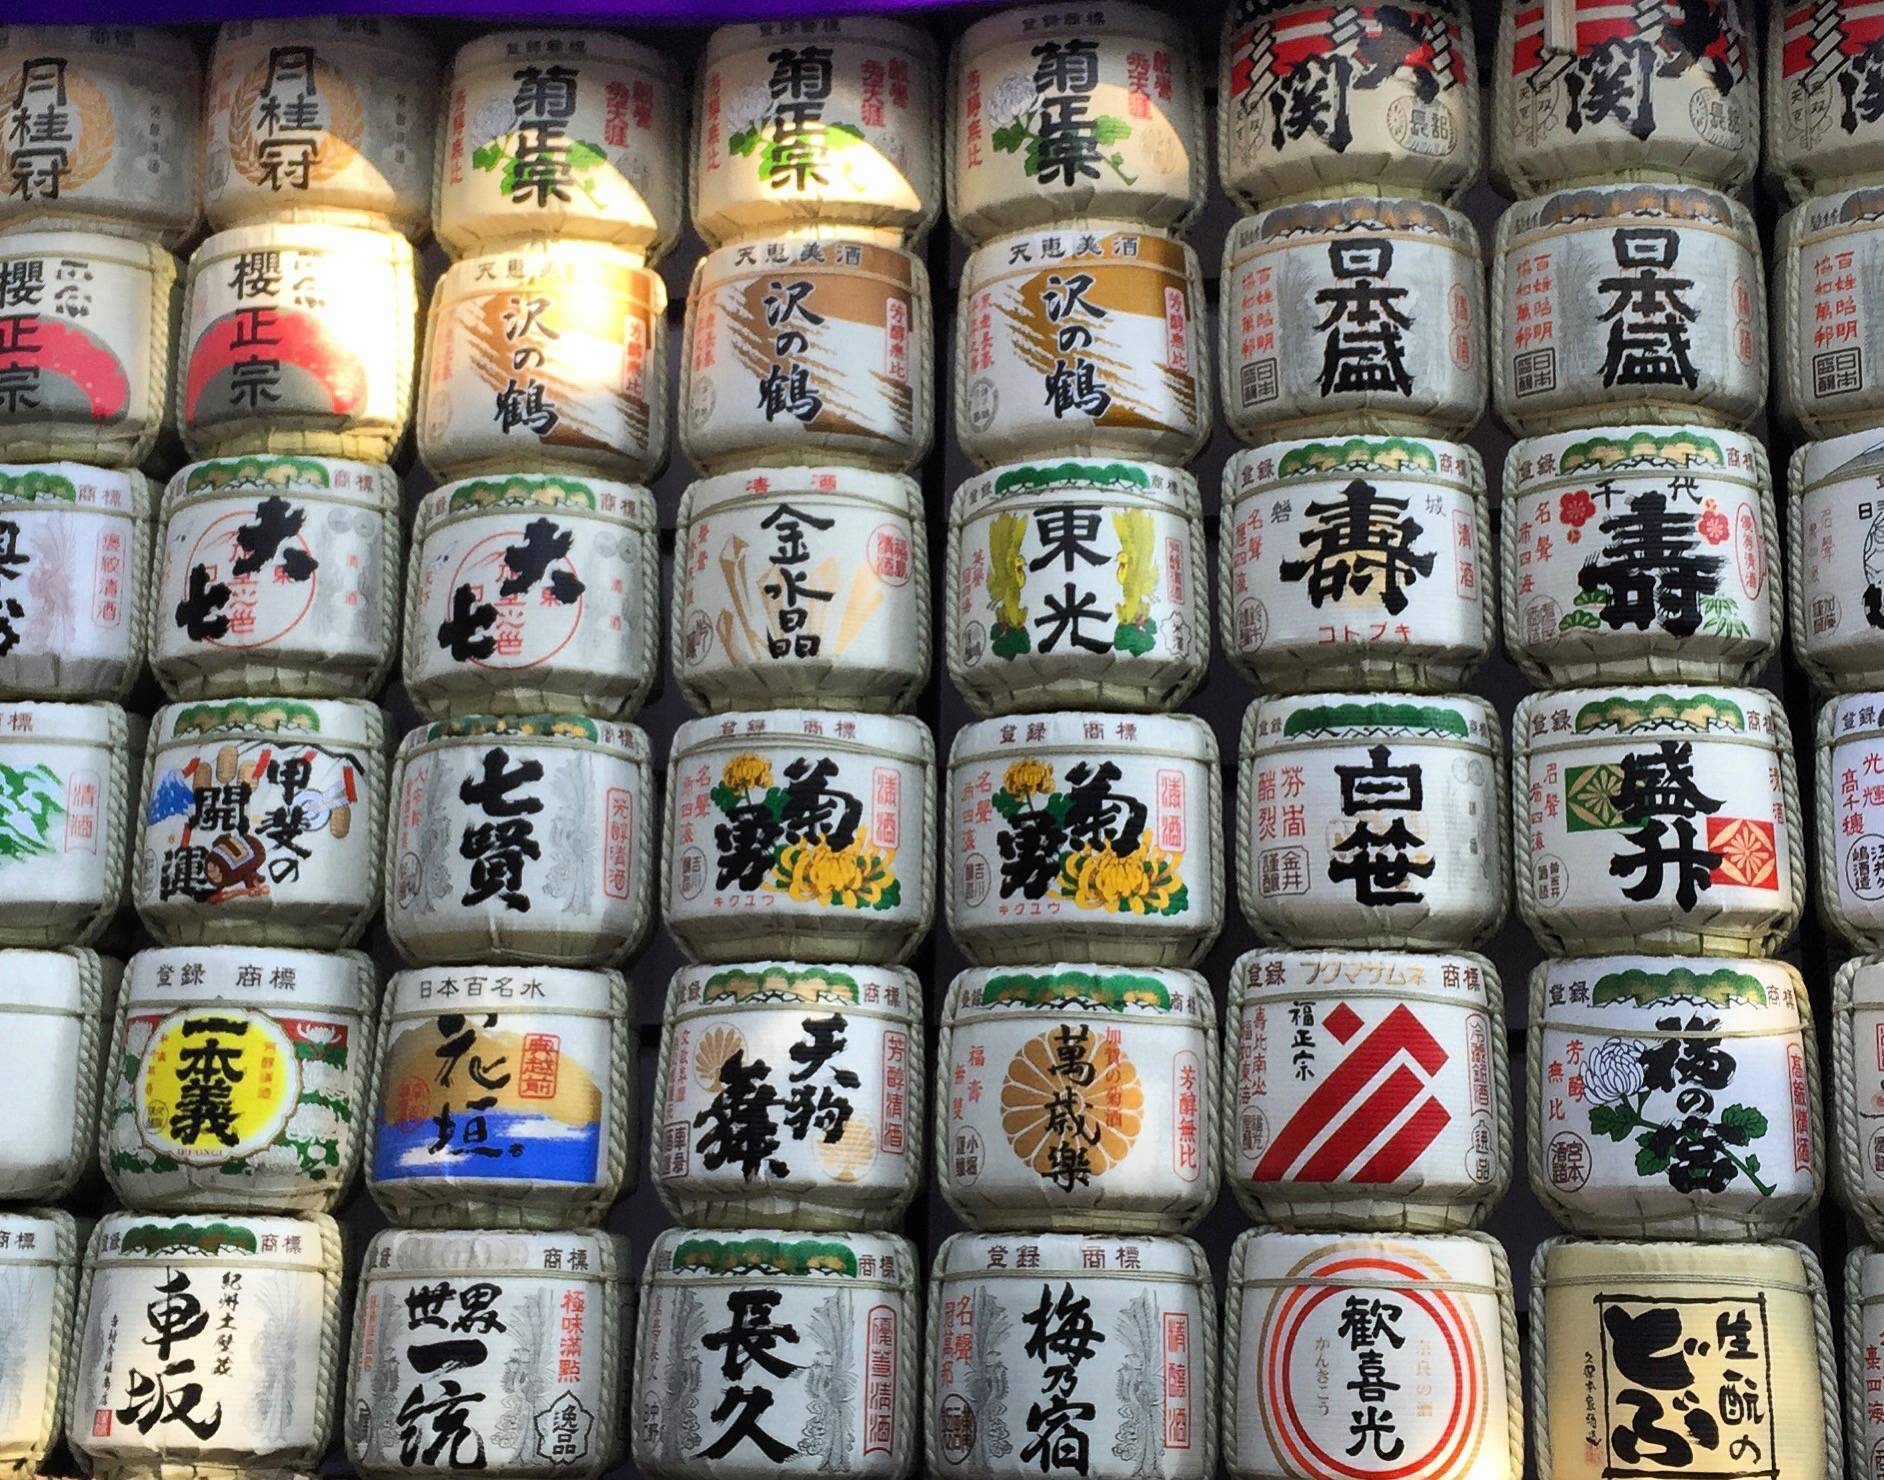 Sake is my favorite drink in Japan. Their whiskey is good and so is the Chu-hi, but on a cold winter day there is nothing I'd prefer than a bottle of hot sake.